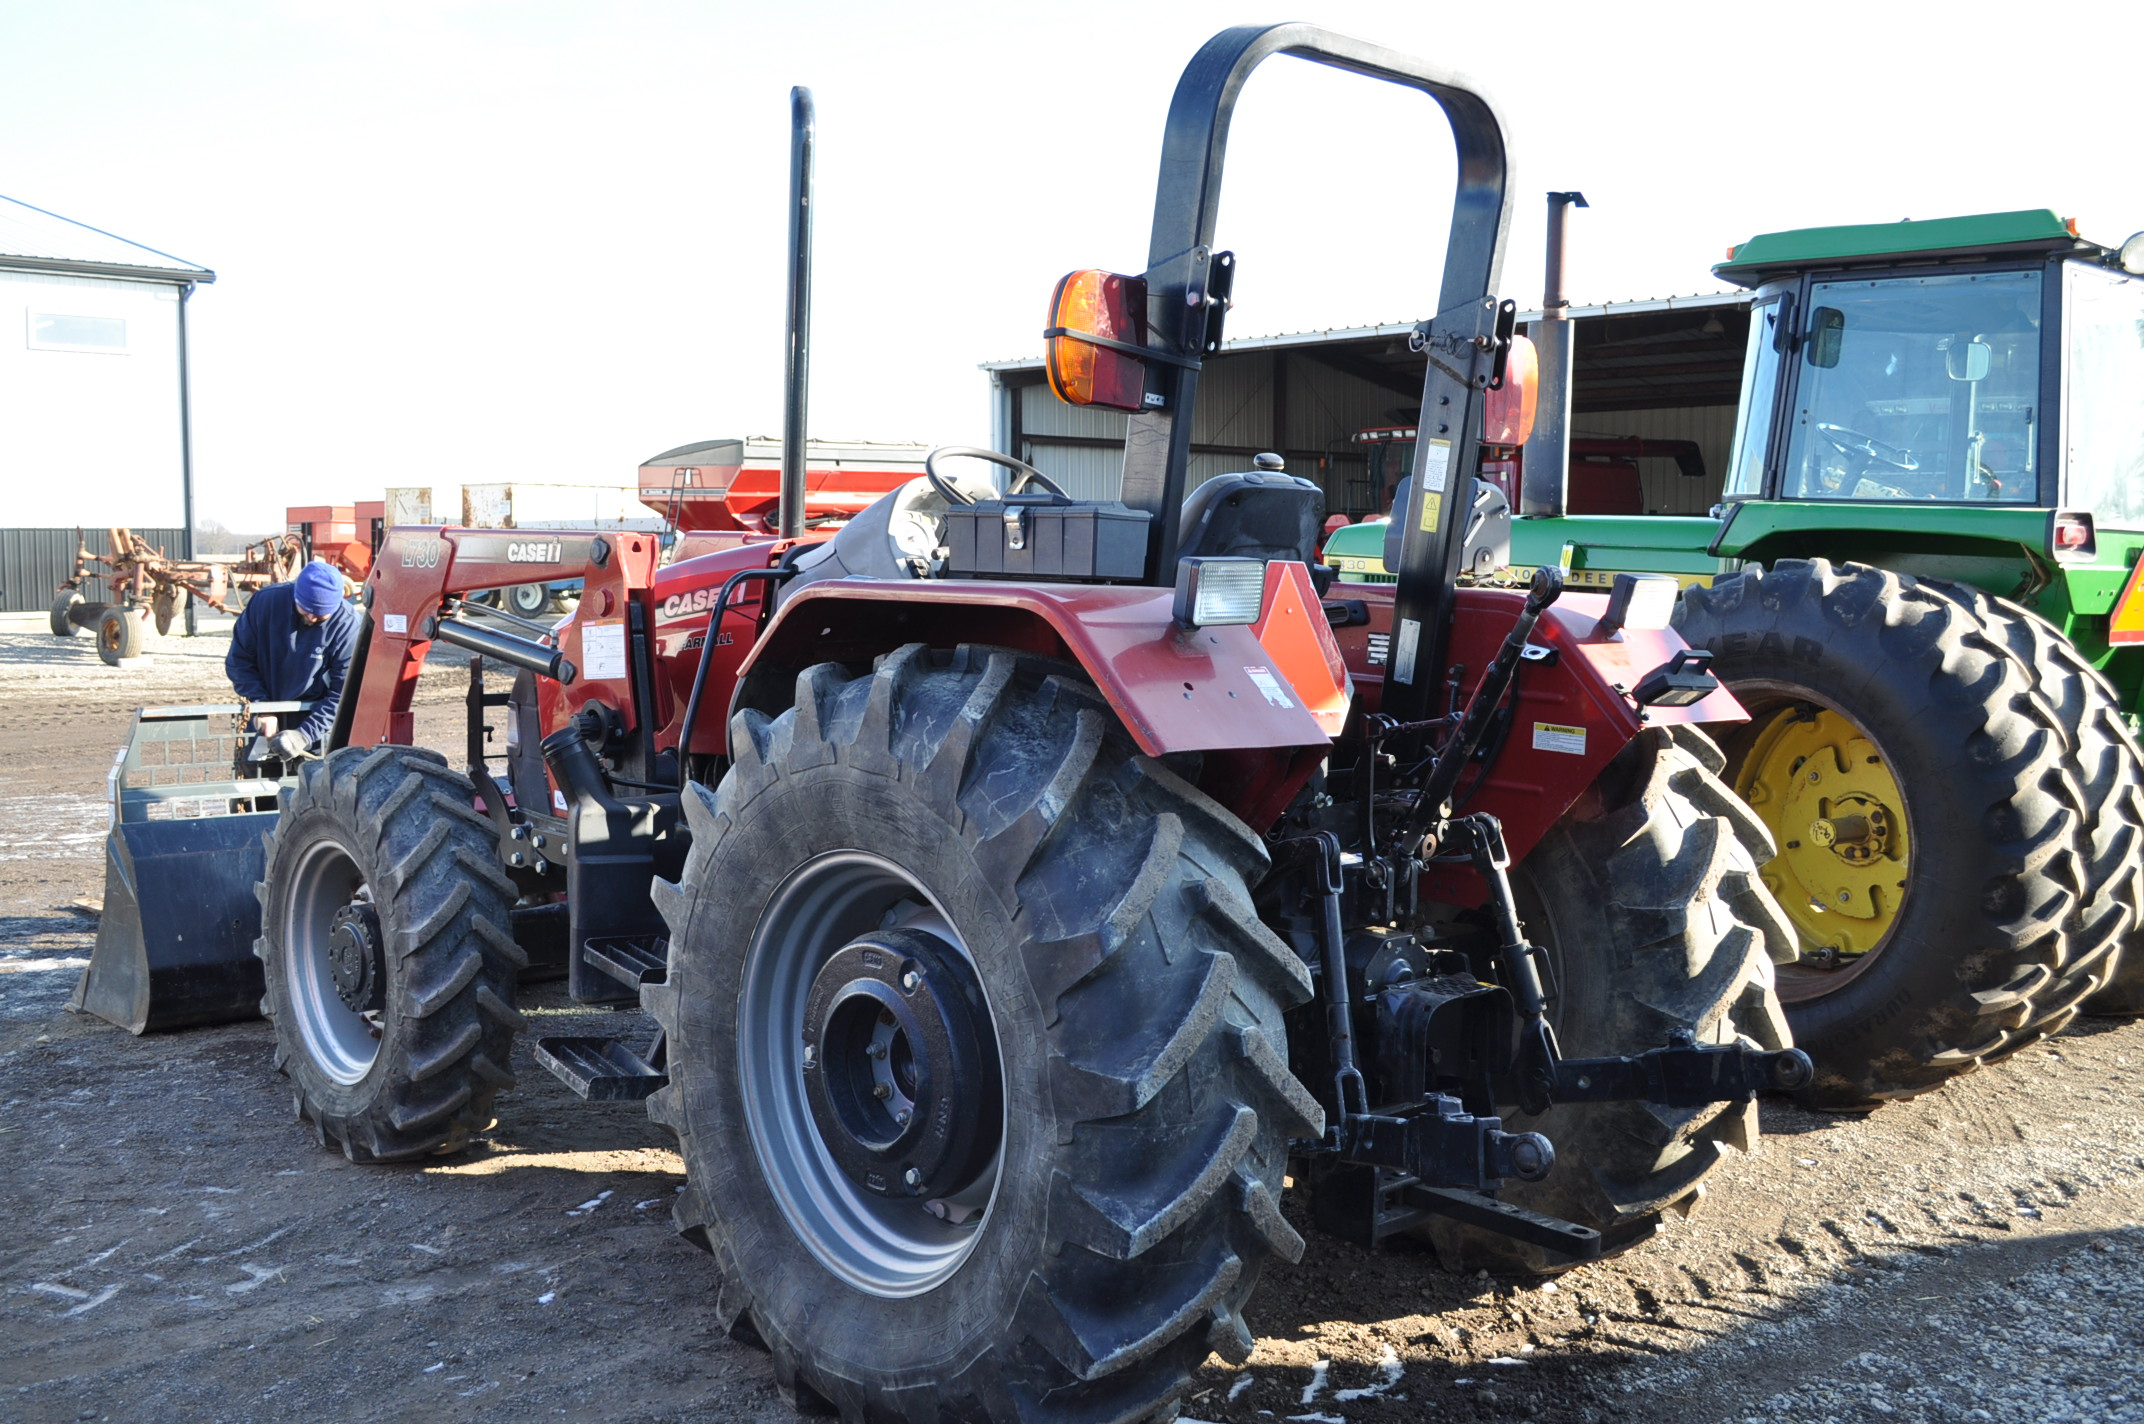 Case IH 85U Farmall MFWD tractor, 18.4R30 rear, 12.4R24 front, open station, mechanical shuttle - Image 3 of 16